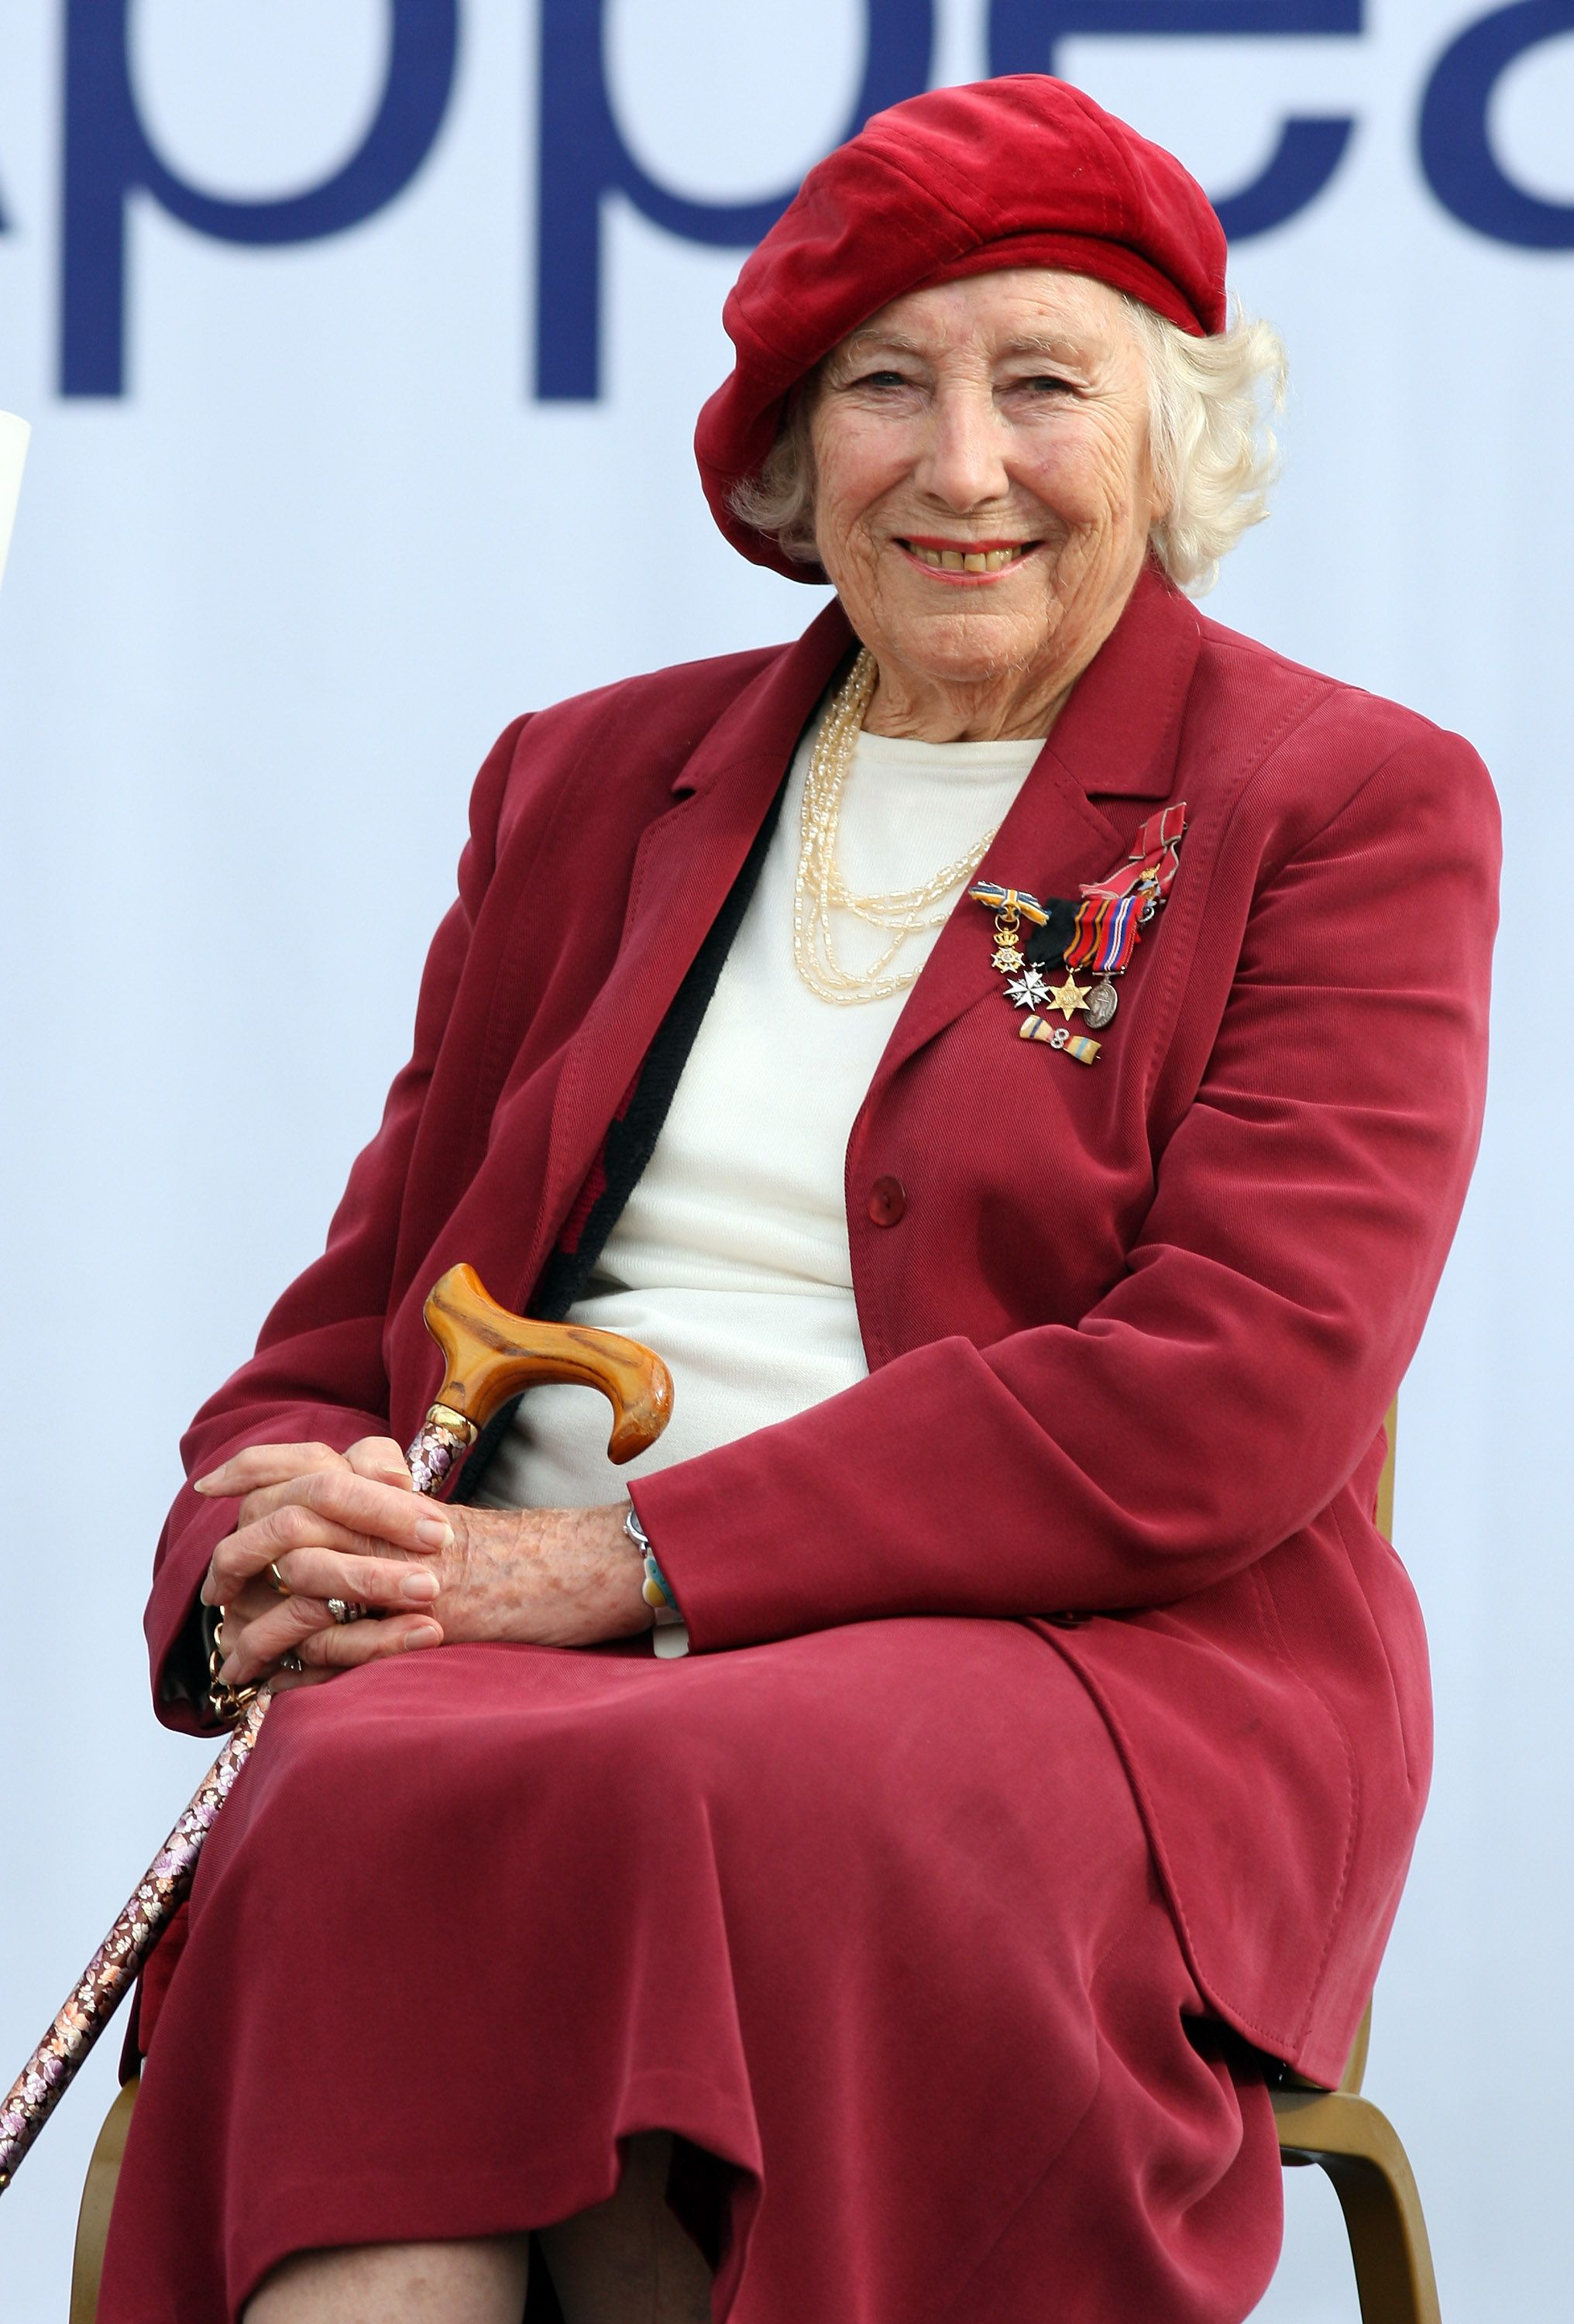 Dame Vera Lynn attends the Poppy Appeal For Afghan Generation launch on October 22, 2009 in London, England.   Source: Getty Images